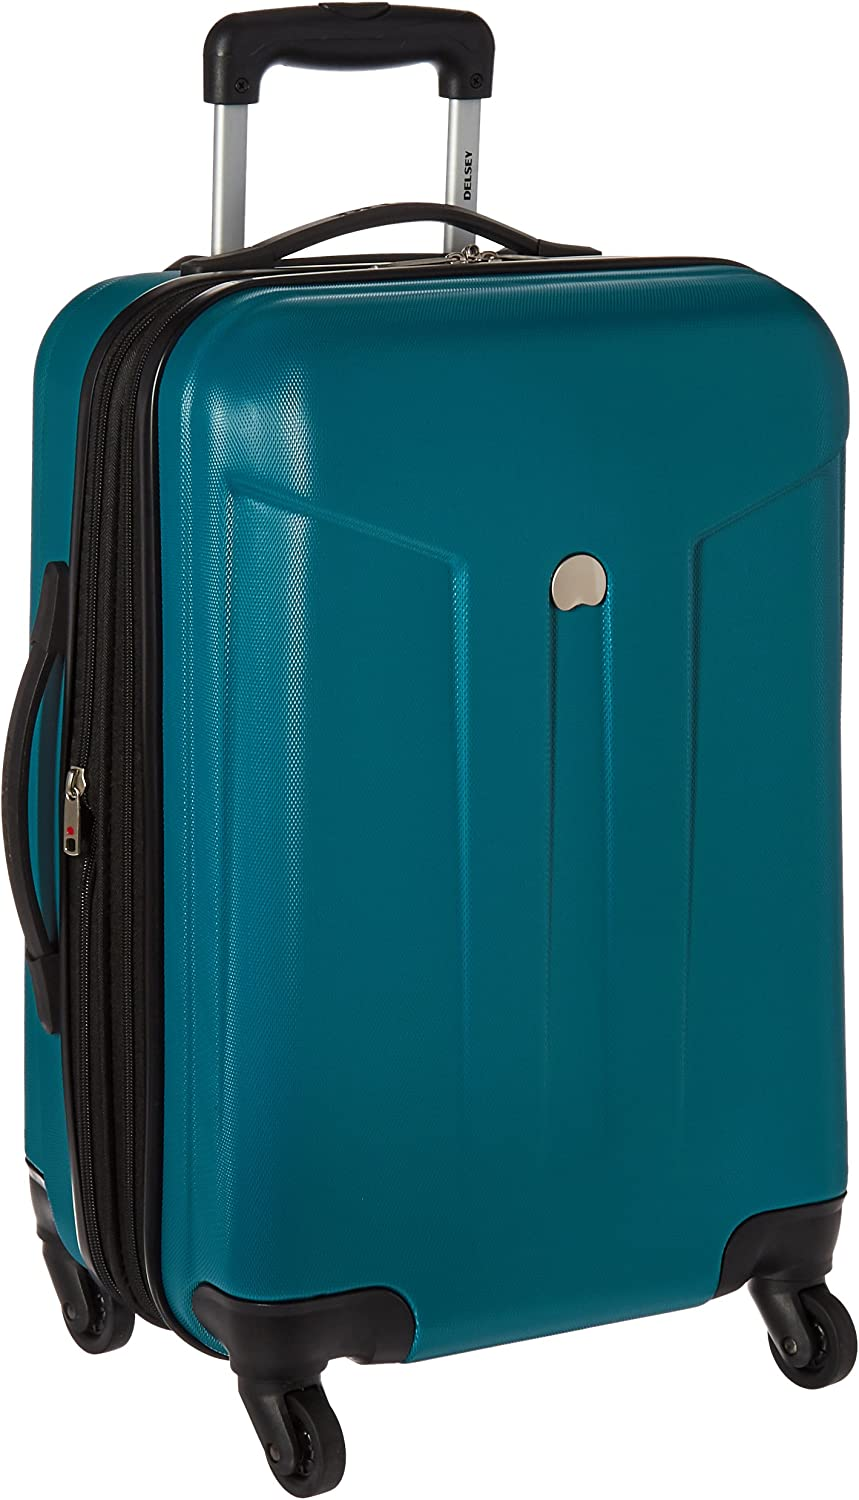 Delsey 2021new shipping free Comete 20-Inch Expandable Carry In a popularity - Luggage On Spinner Teal